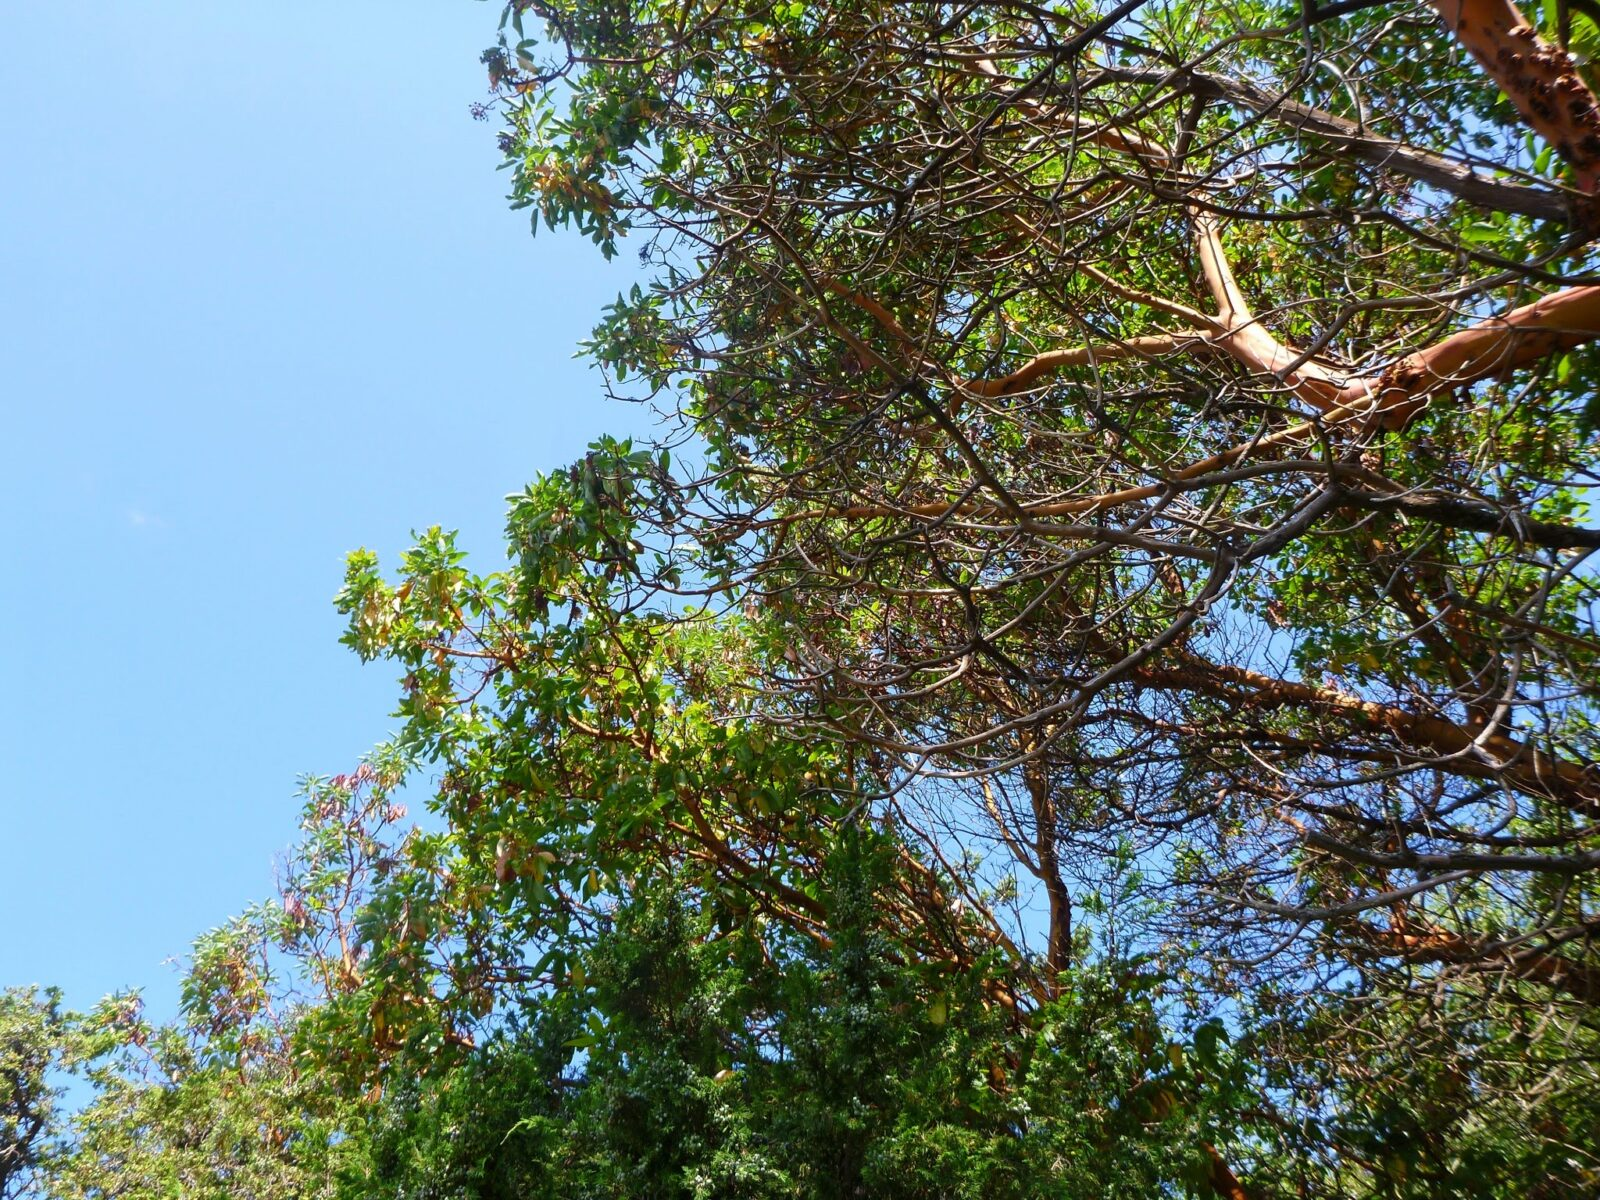 A view from below looking up at Pacific Madrona trees on a sunny day. The trees have red bark and bring green leaves